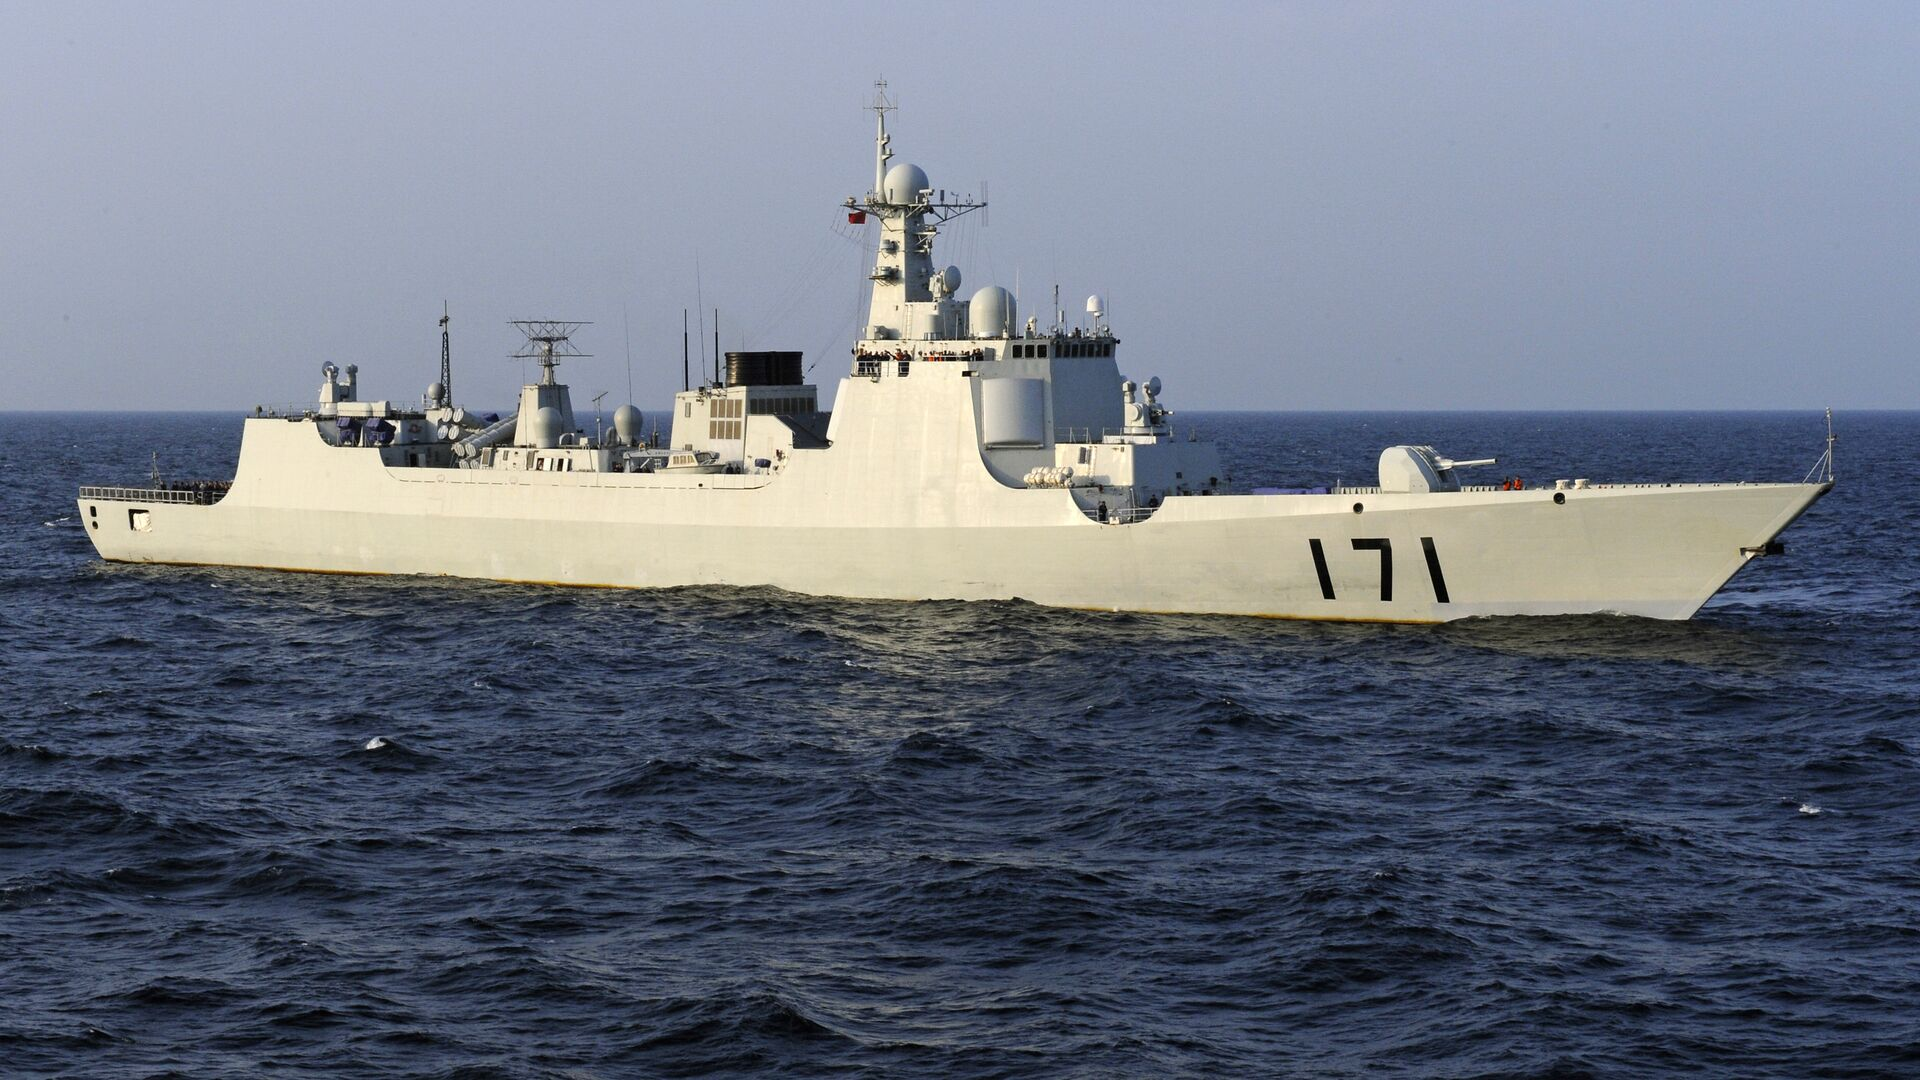 Chinese navy warship, the DDG-171 Haikou destroyer, patrols the waters of the Gulf of Aden (file photo) - Sputnik International, 1920, 14.09.2021